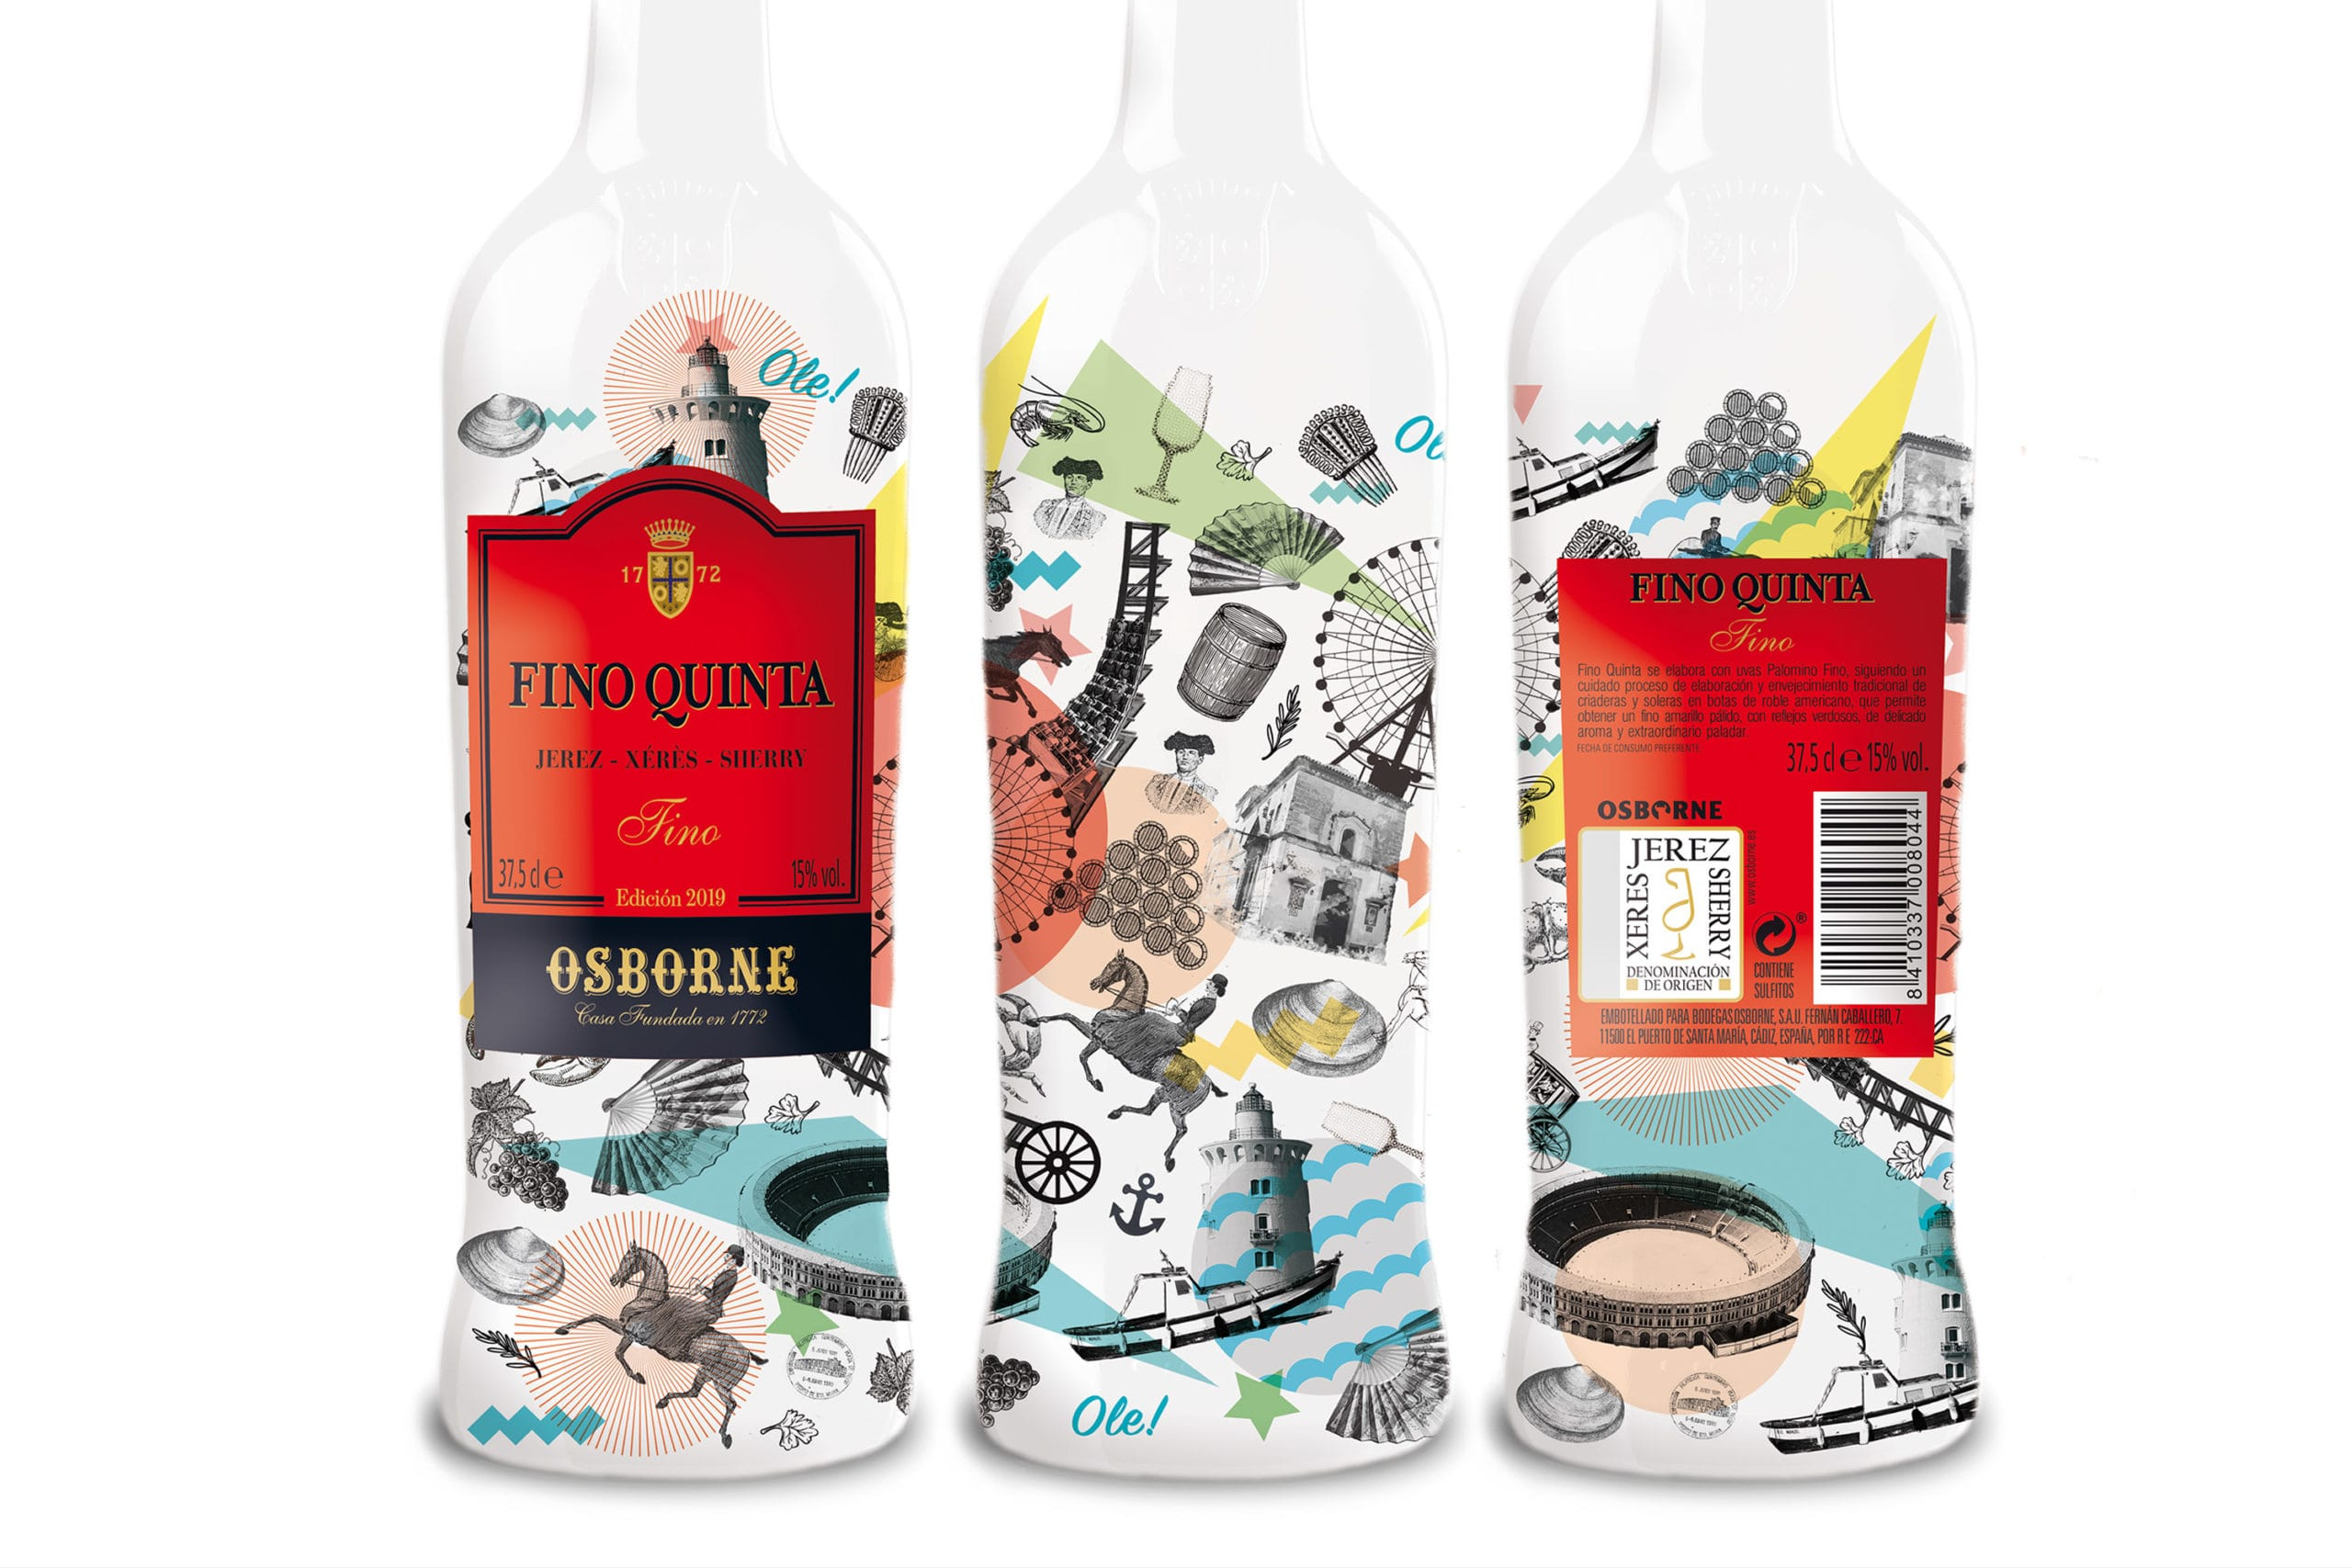 Salvartes Design Create Botella Aniversario Osborne Packaging Design